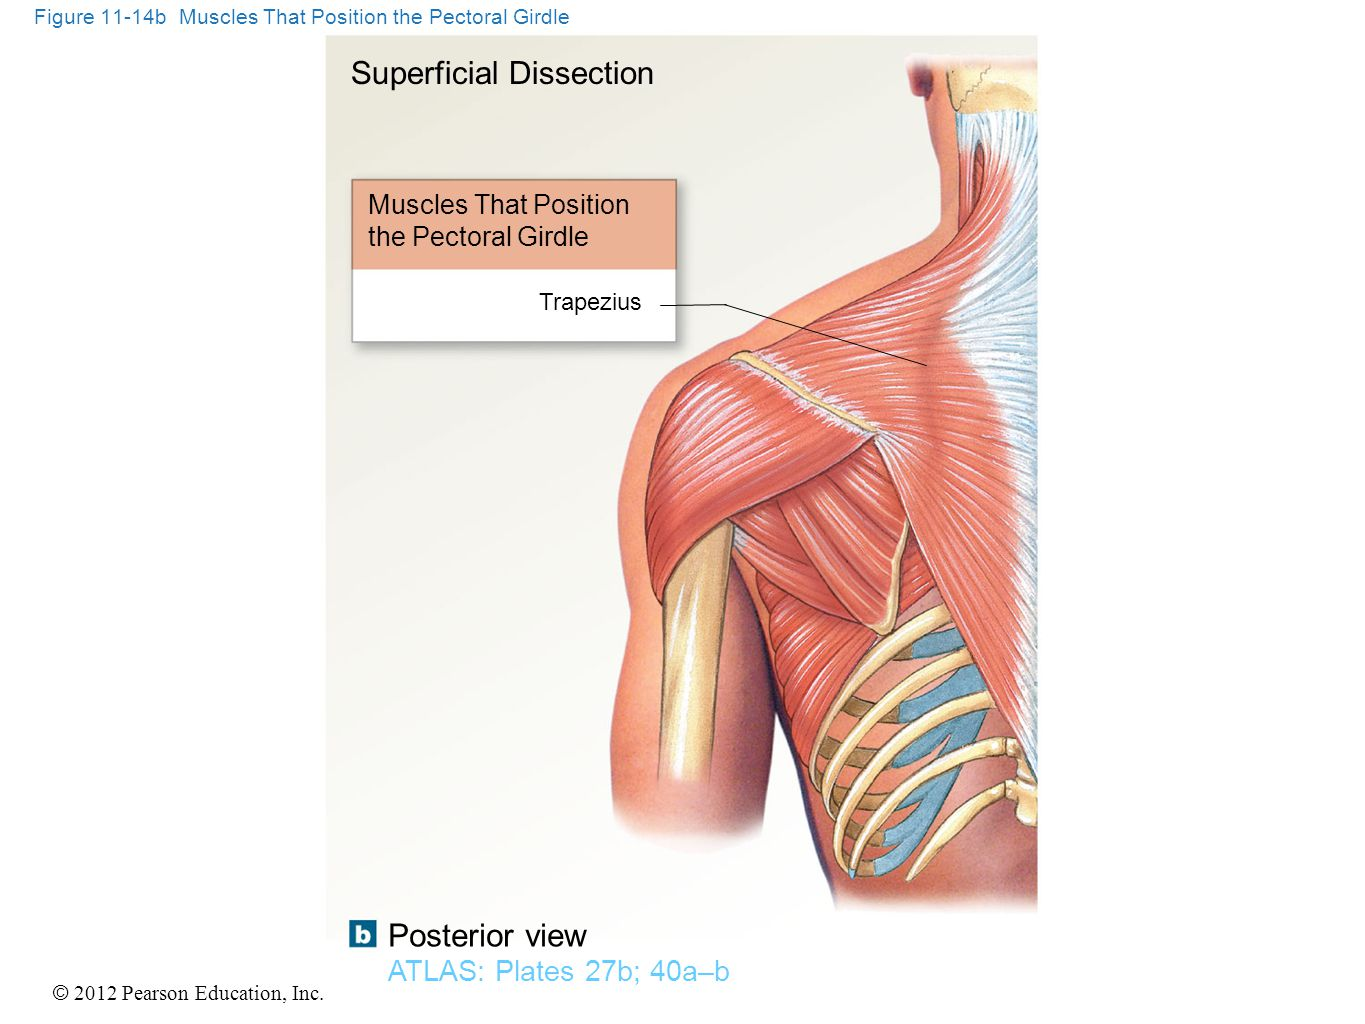 Figure 11-14b Muscles That Position the Pectoral Girdle